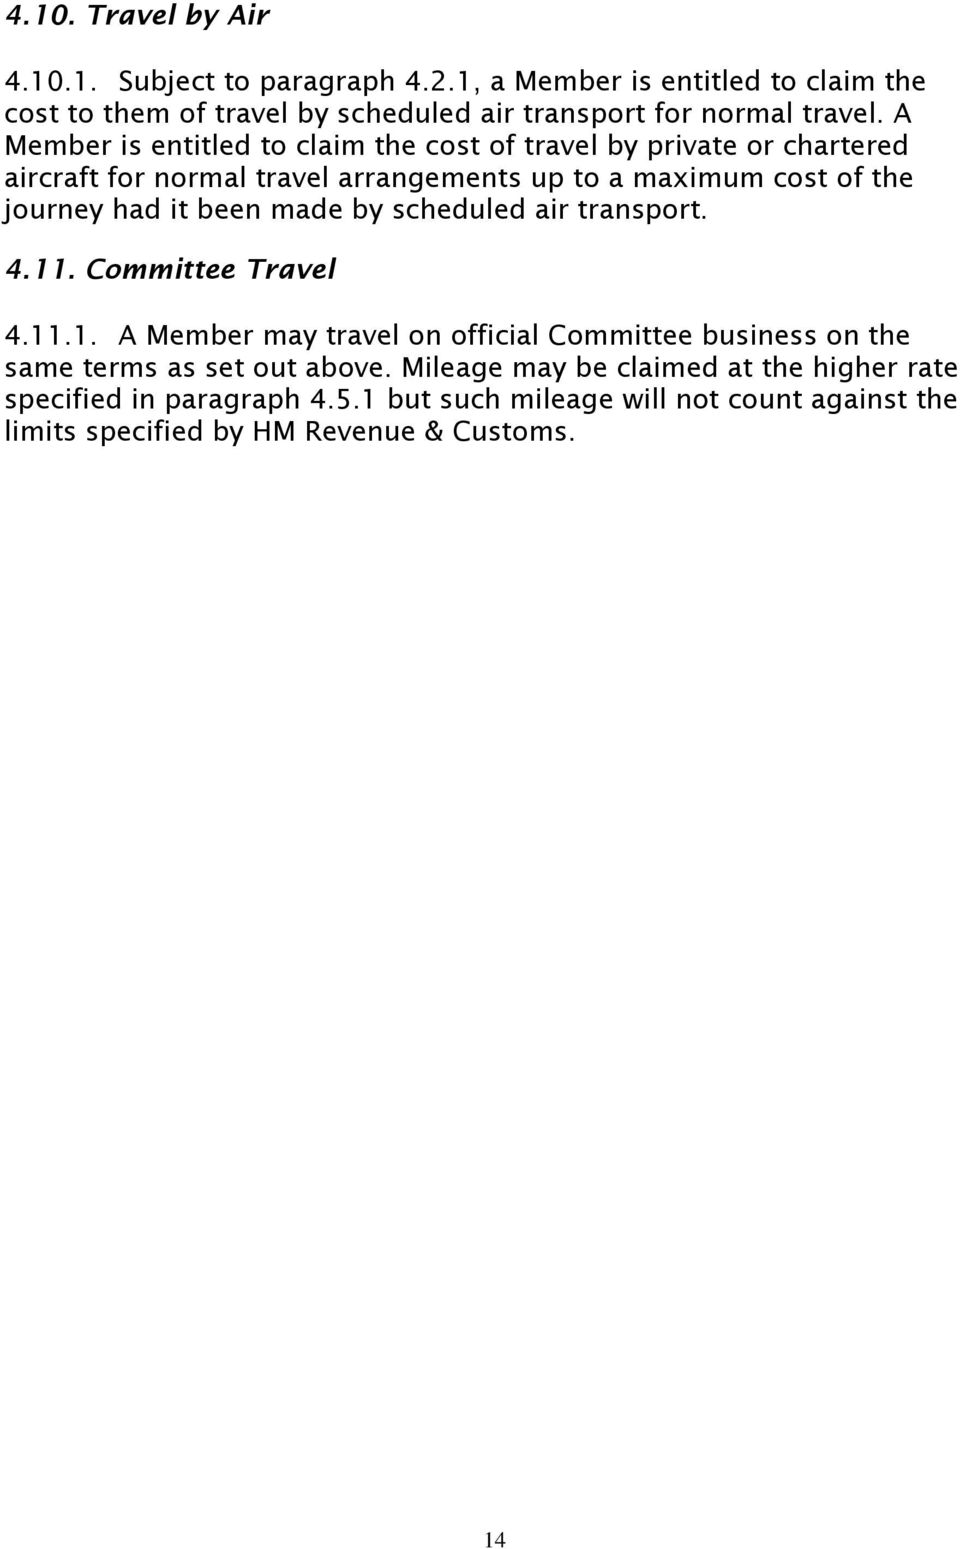 been made by scheduled air transport. 4.11. Committee Travel 4.11.1. A Member may travel on official Committee business on the same terms as set out above.